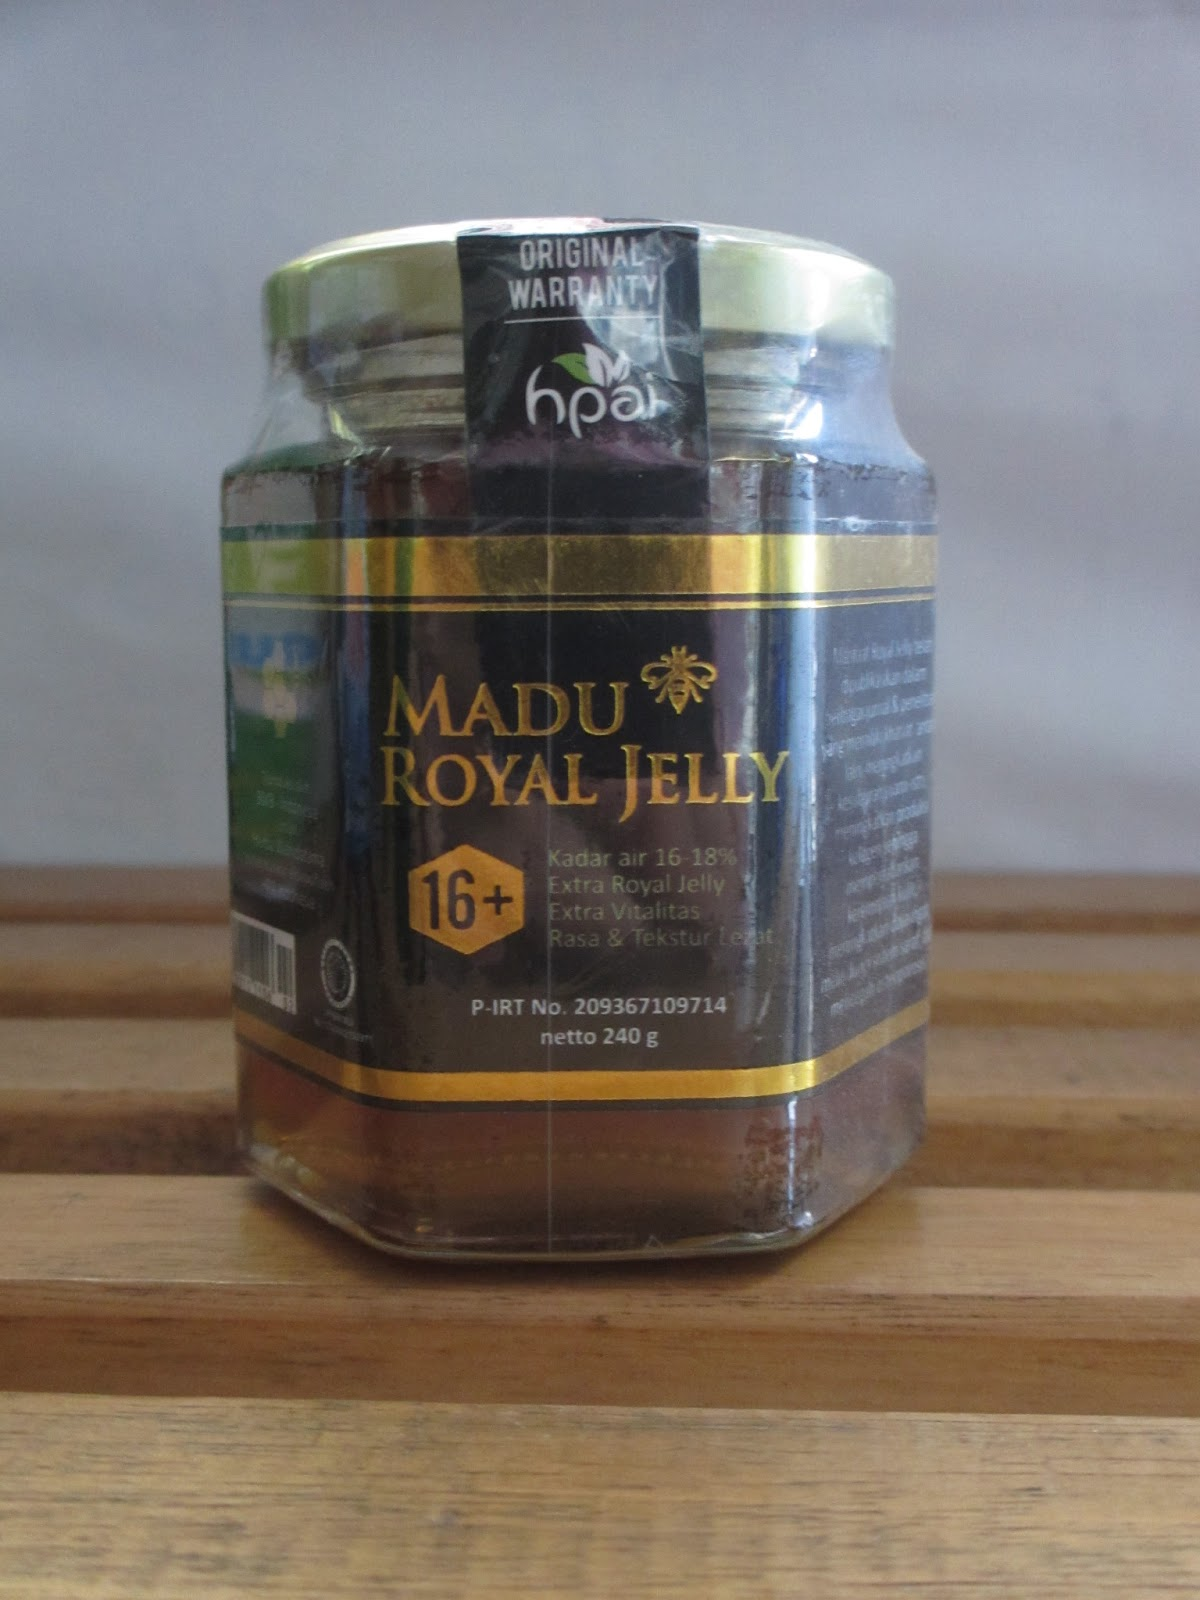 madu royal jelly surabaya